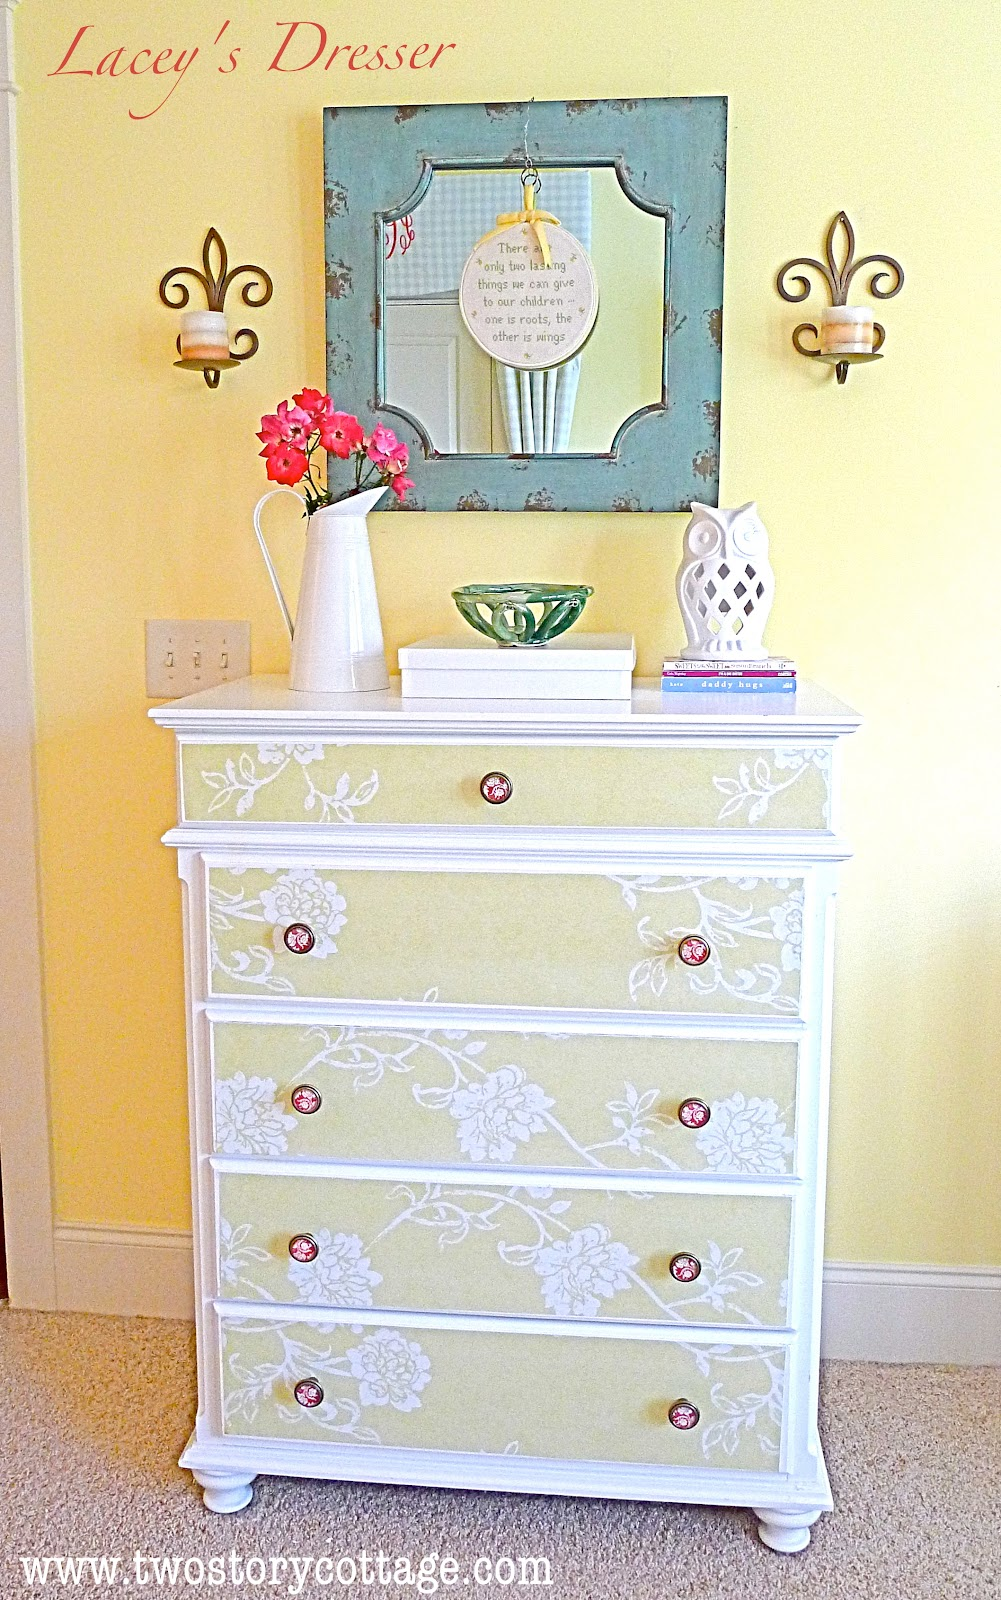 Wallpaper Dresser Tutorial Complete With Don Ts HD Wallpapers Download Free Images Wallpaper [1000image.com]